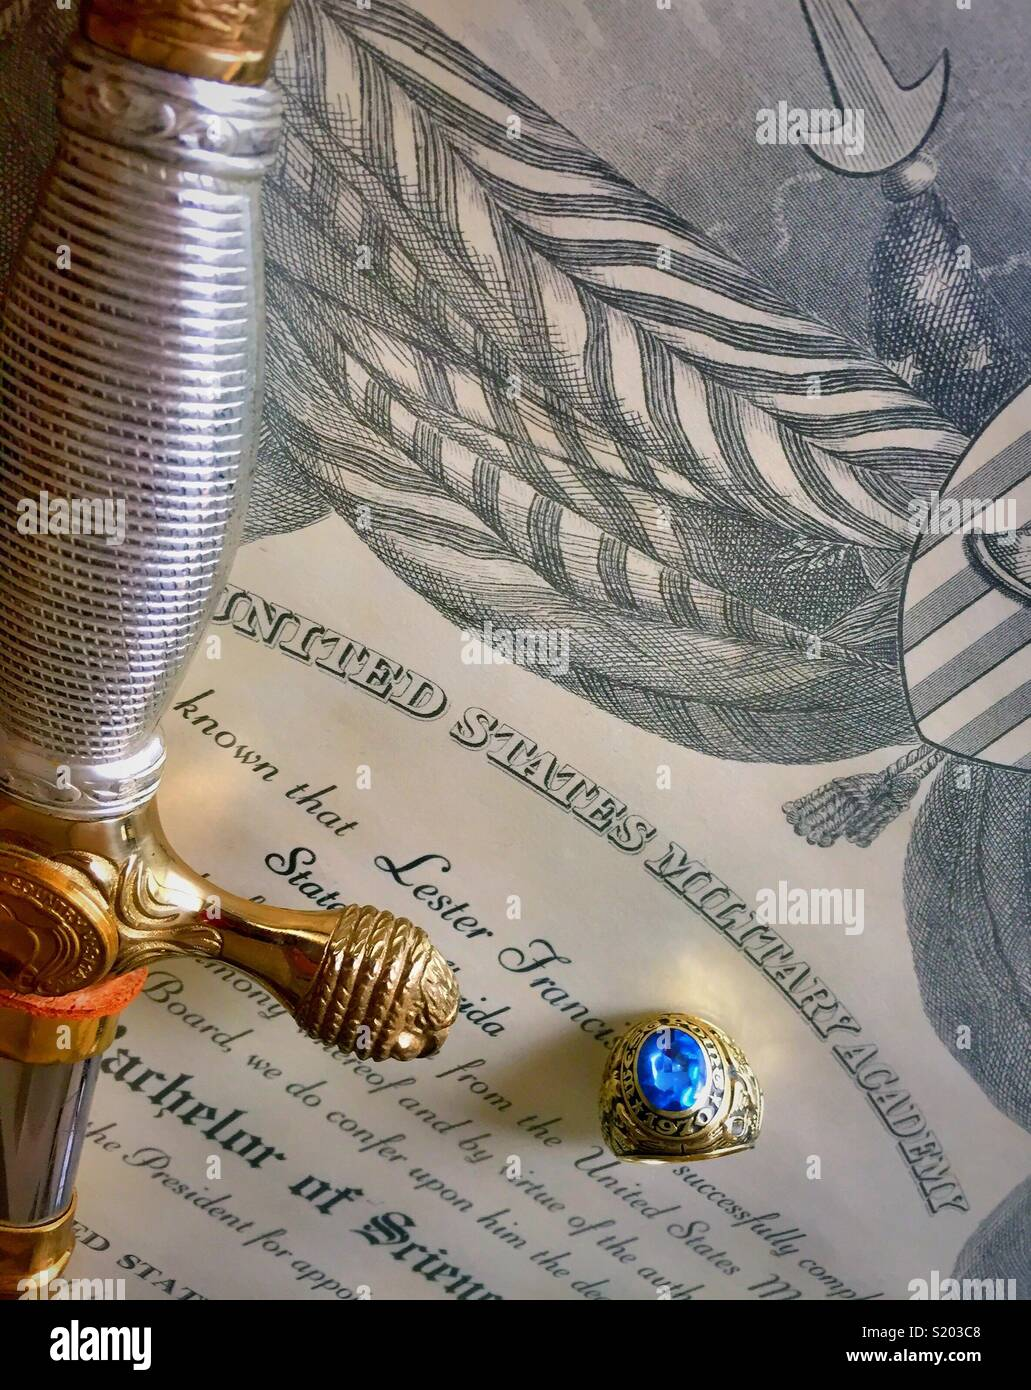 Cadet saber and graduate ring on United States military academy diploma still life, West Point , New York,  United States - Stock Image